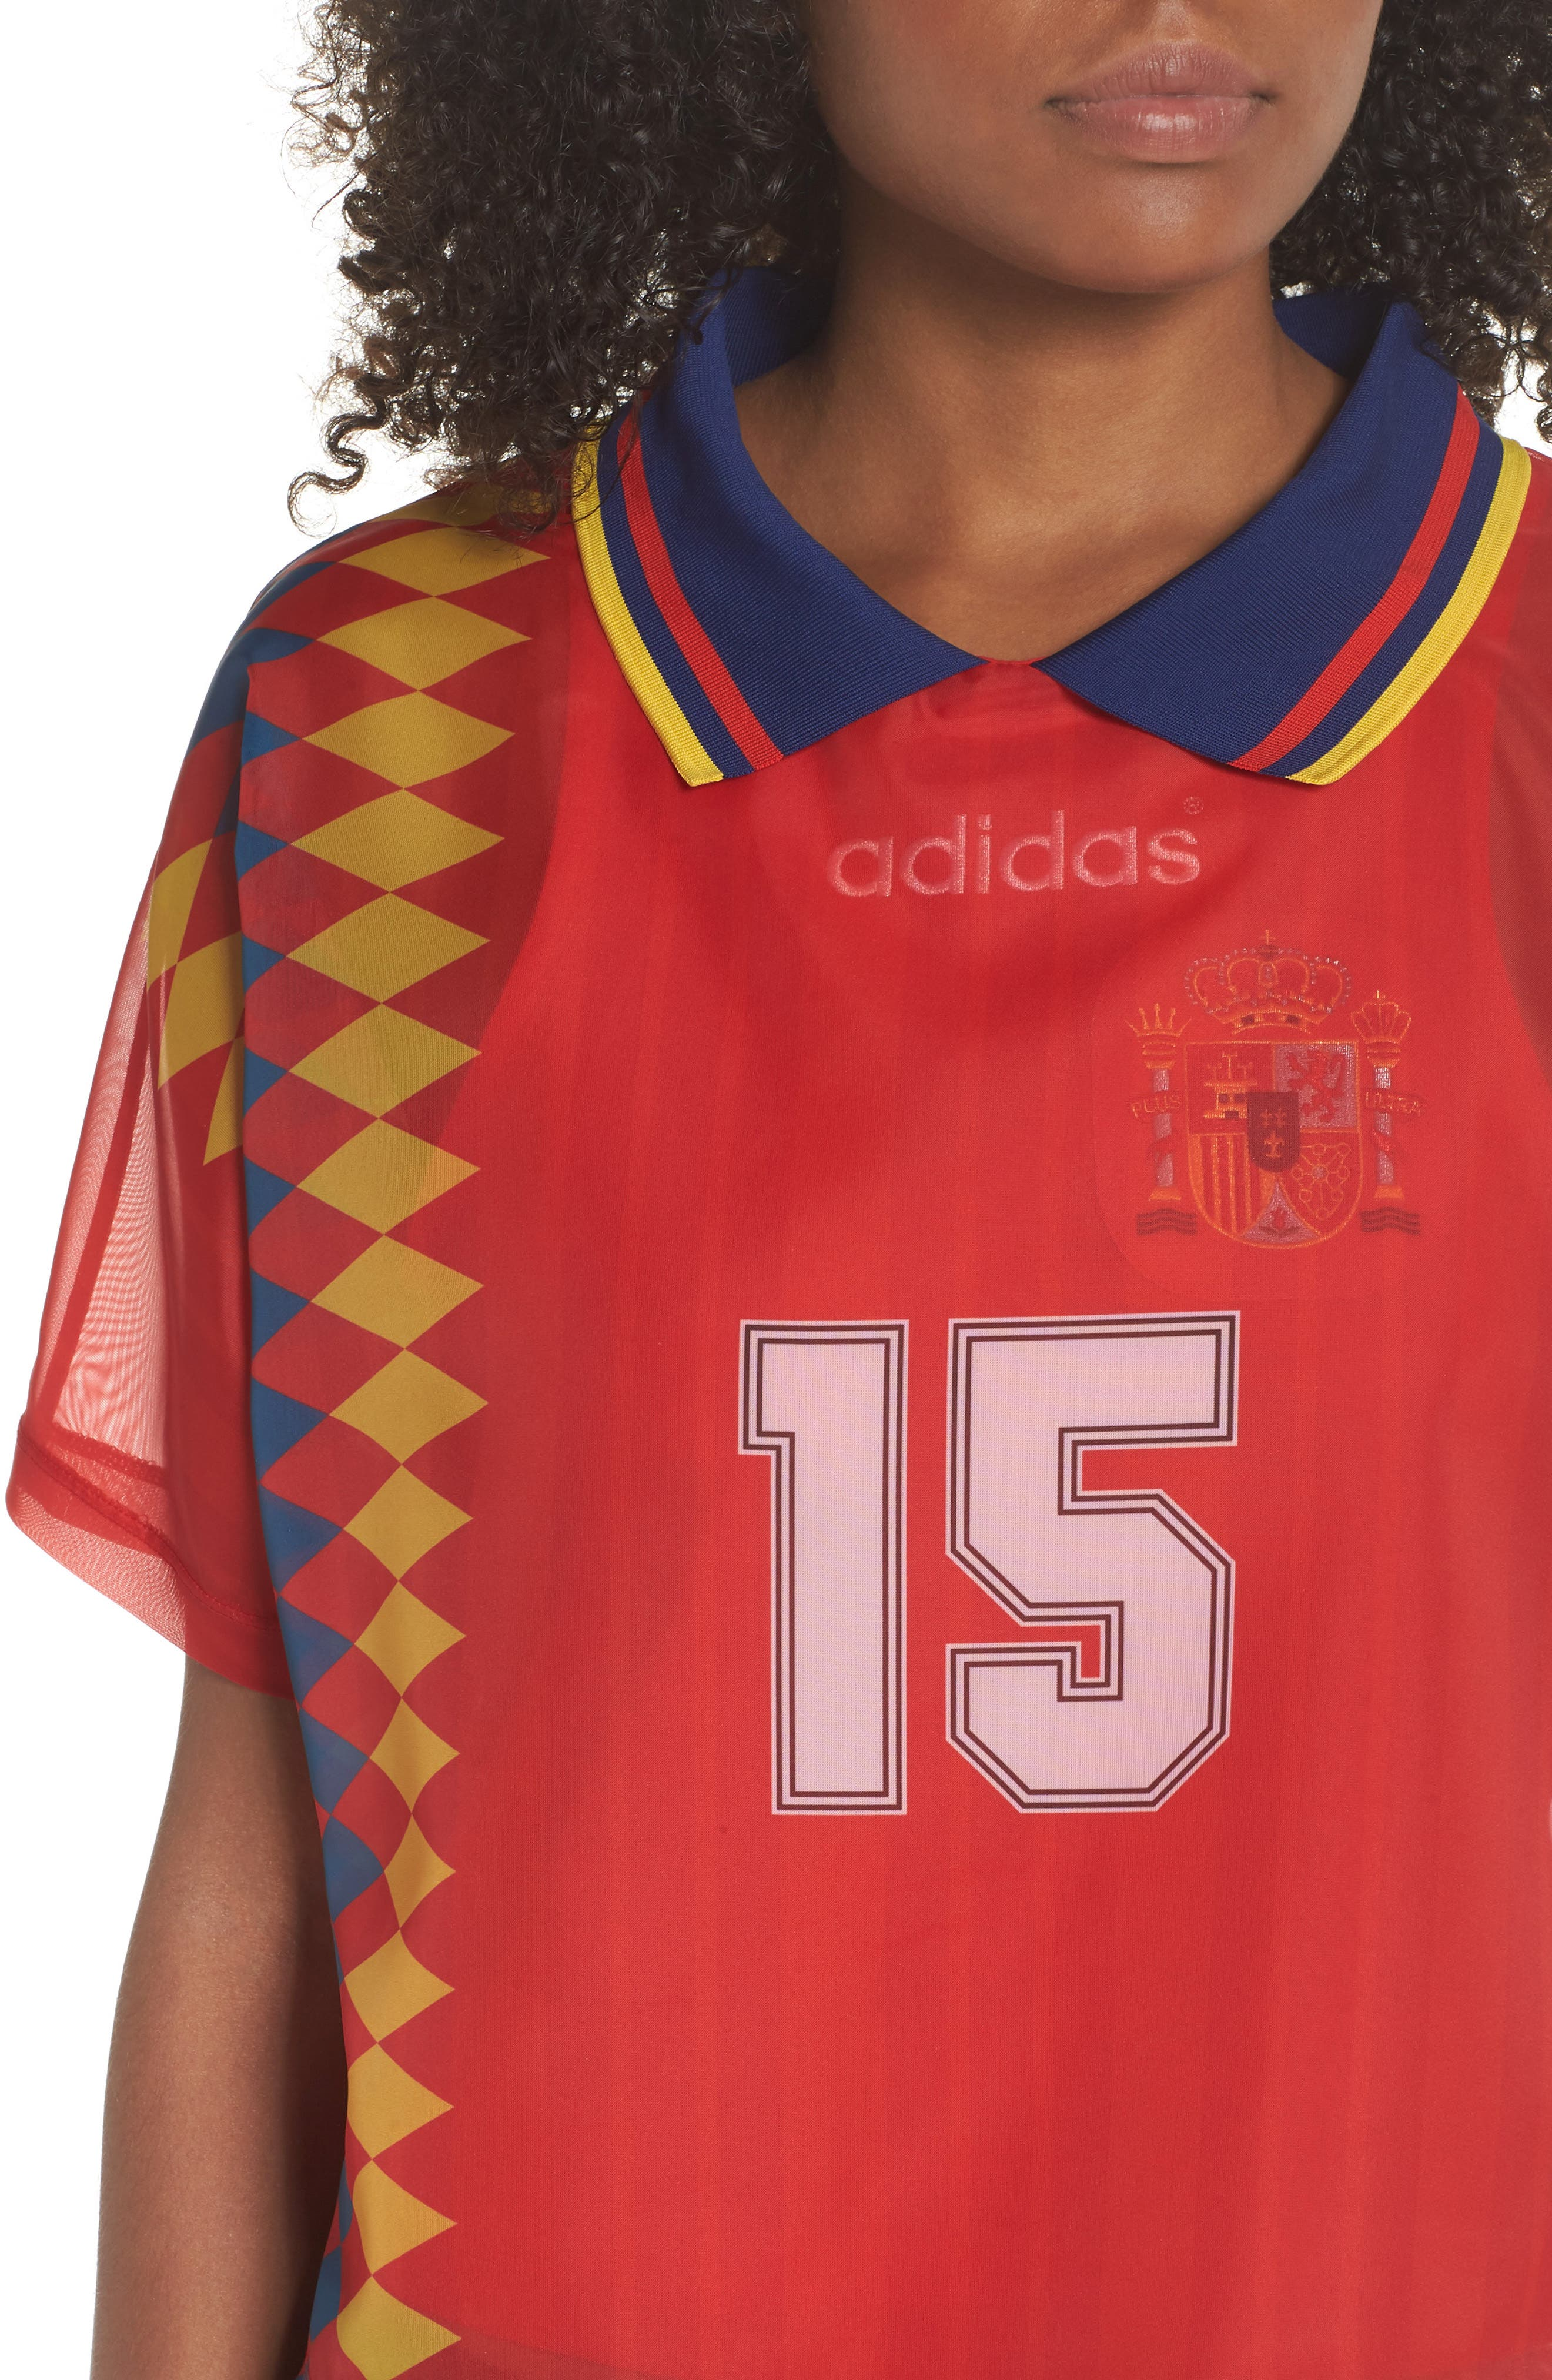 Originals Soccer Jersey Layer Tee,                             Alternate thumbnail 4, color,                             Multicolor Red